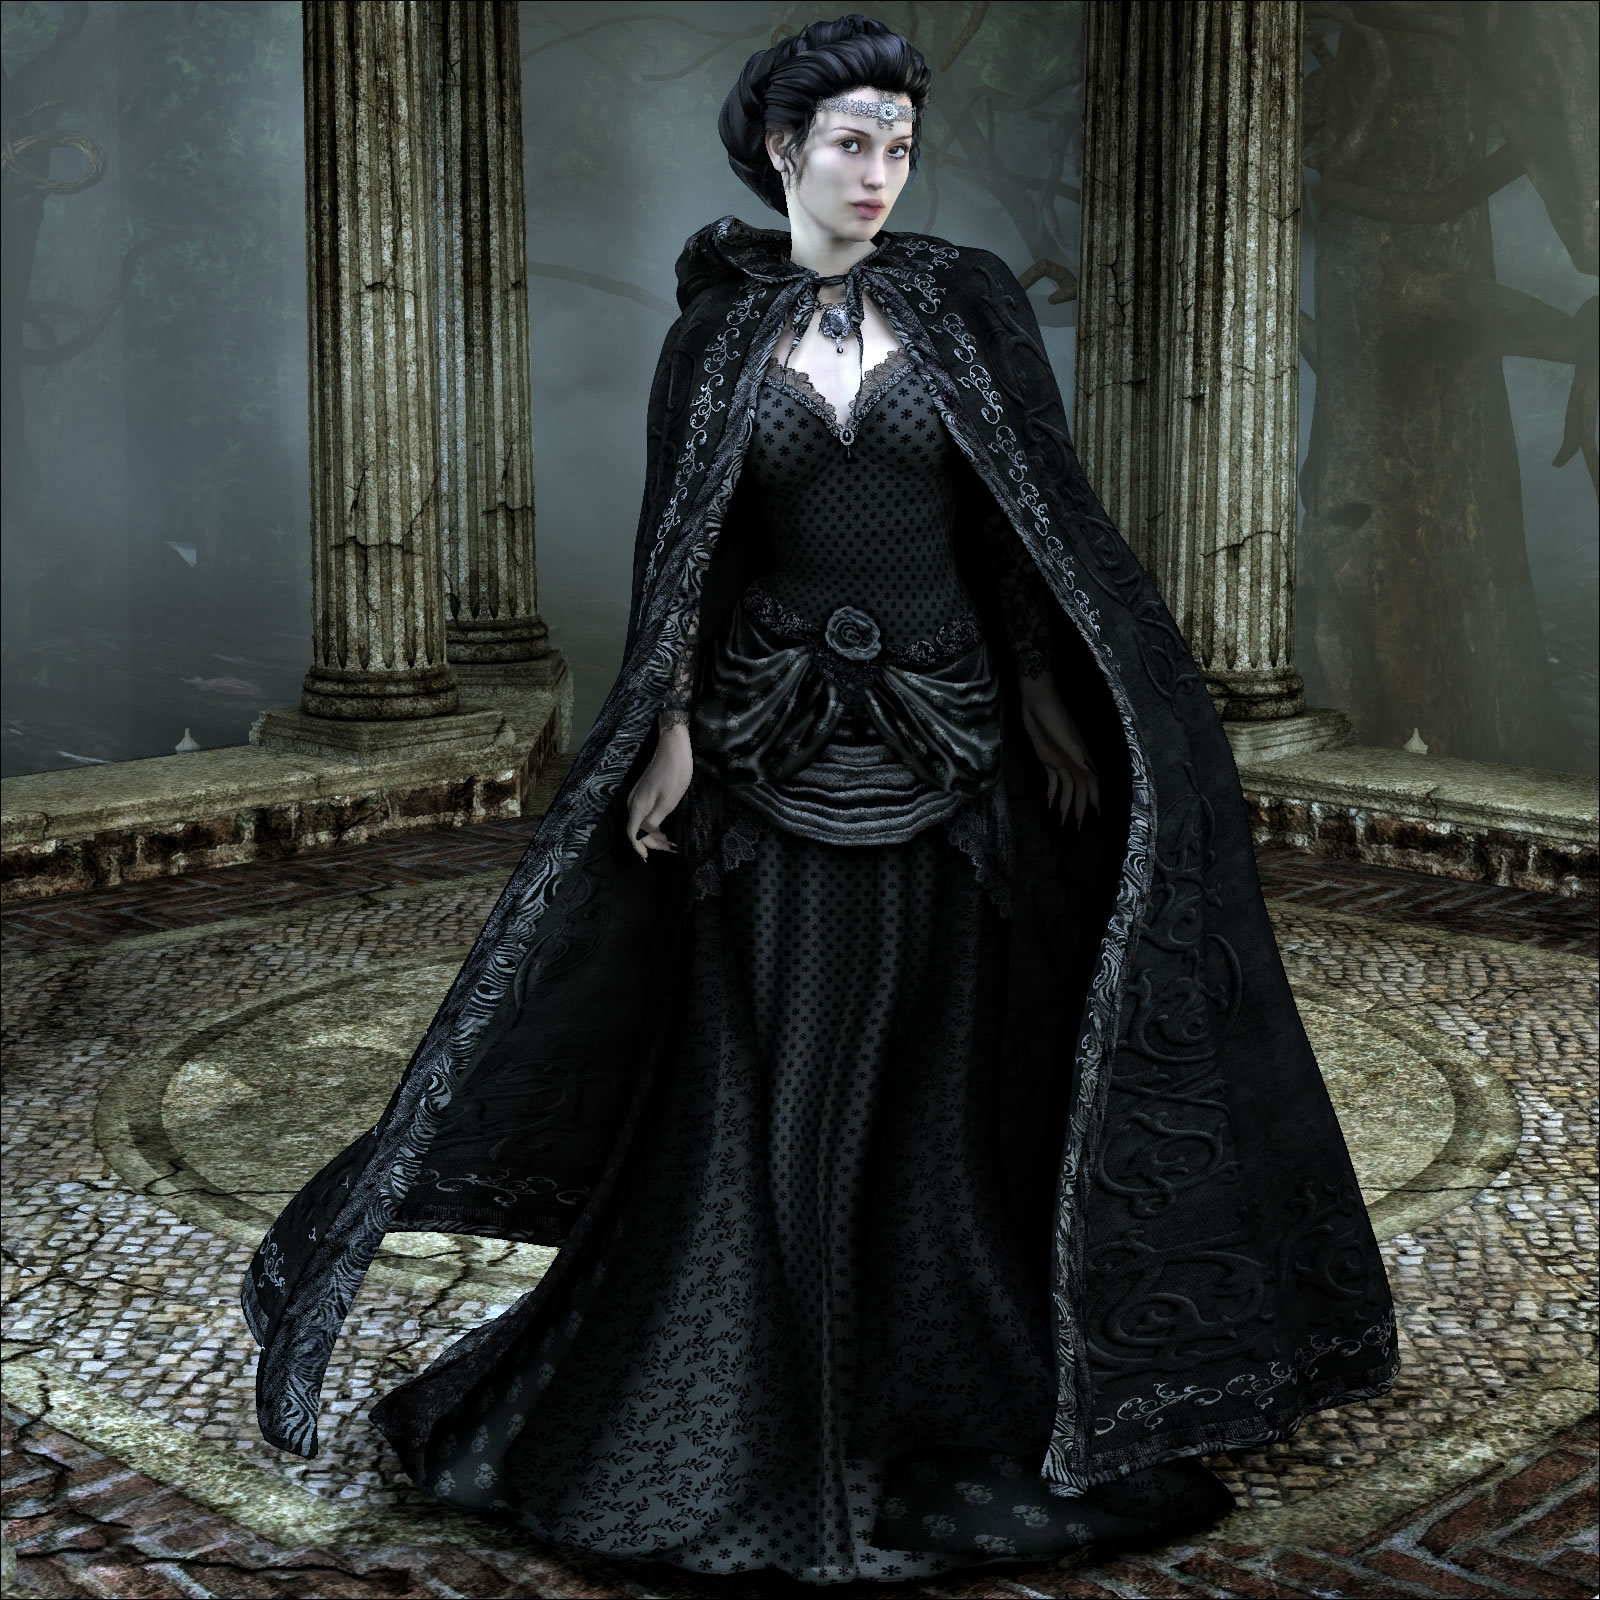 Princess of Darkness by Moyra